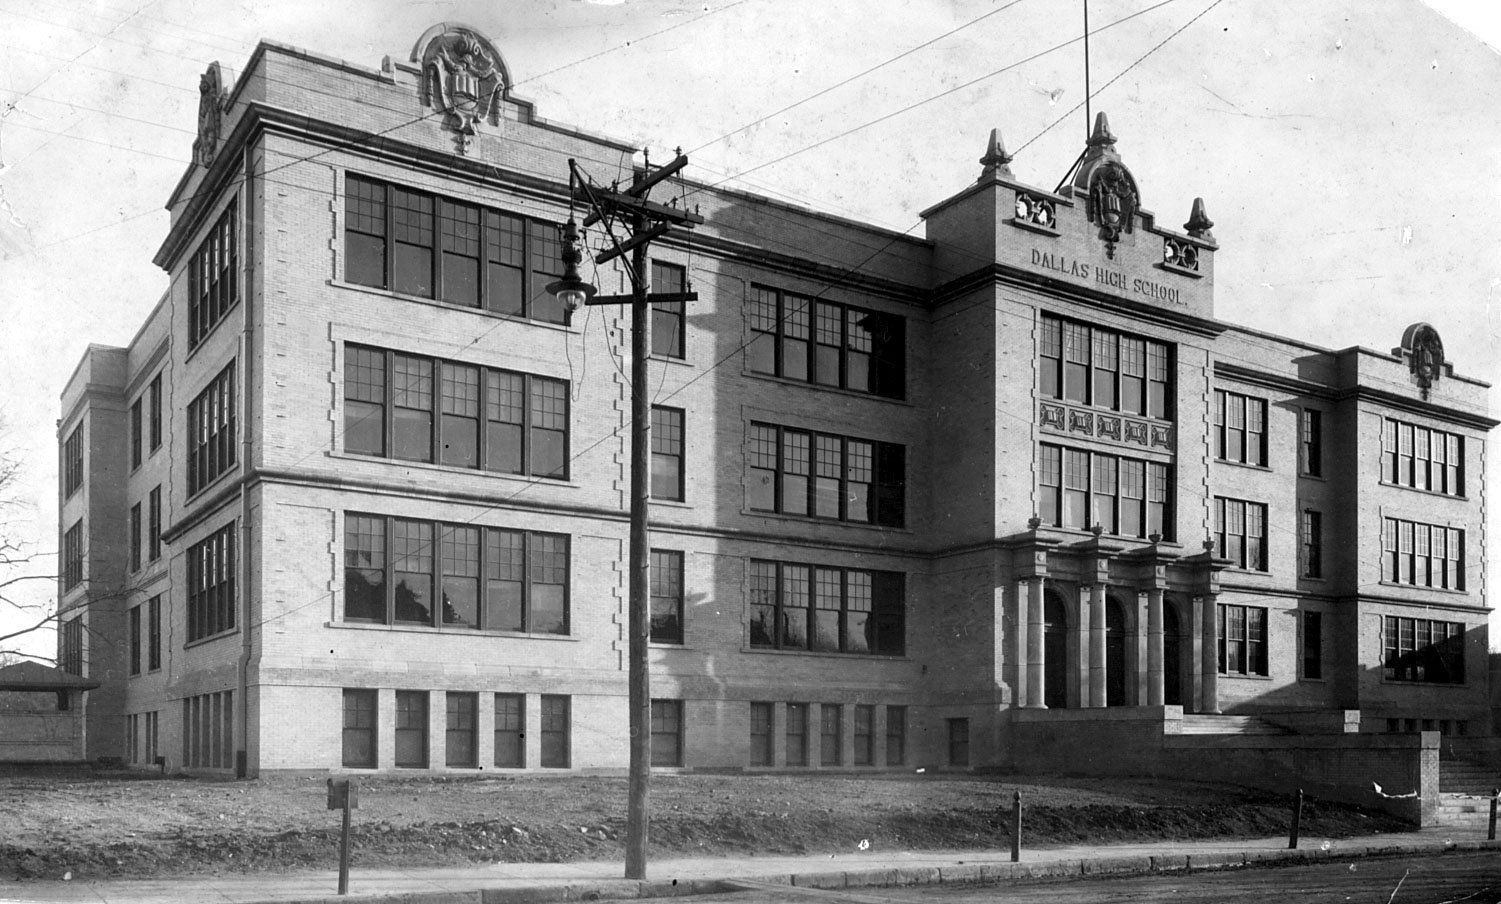 Dallas High School, circa 1910. Architects Lang & Witchell completed the school in 1908. Photo courtesy of the Dallas Historical Society.